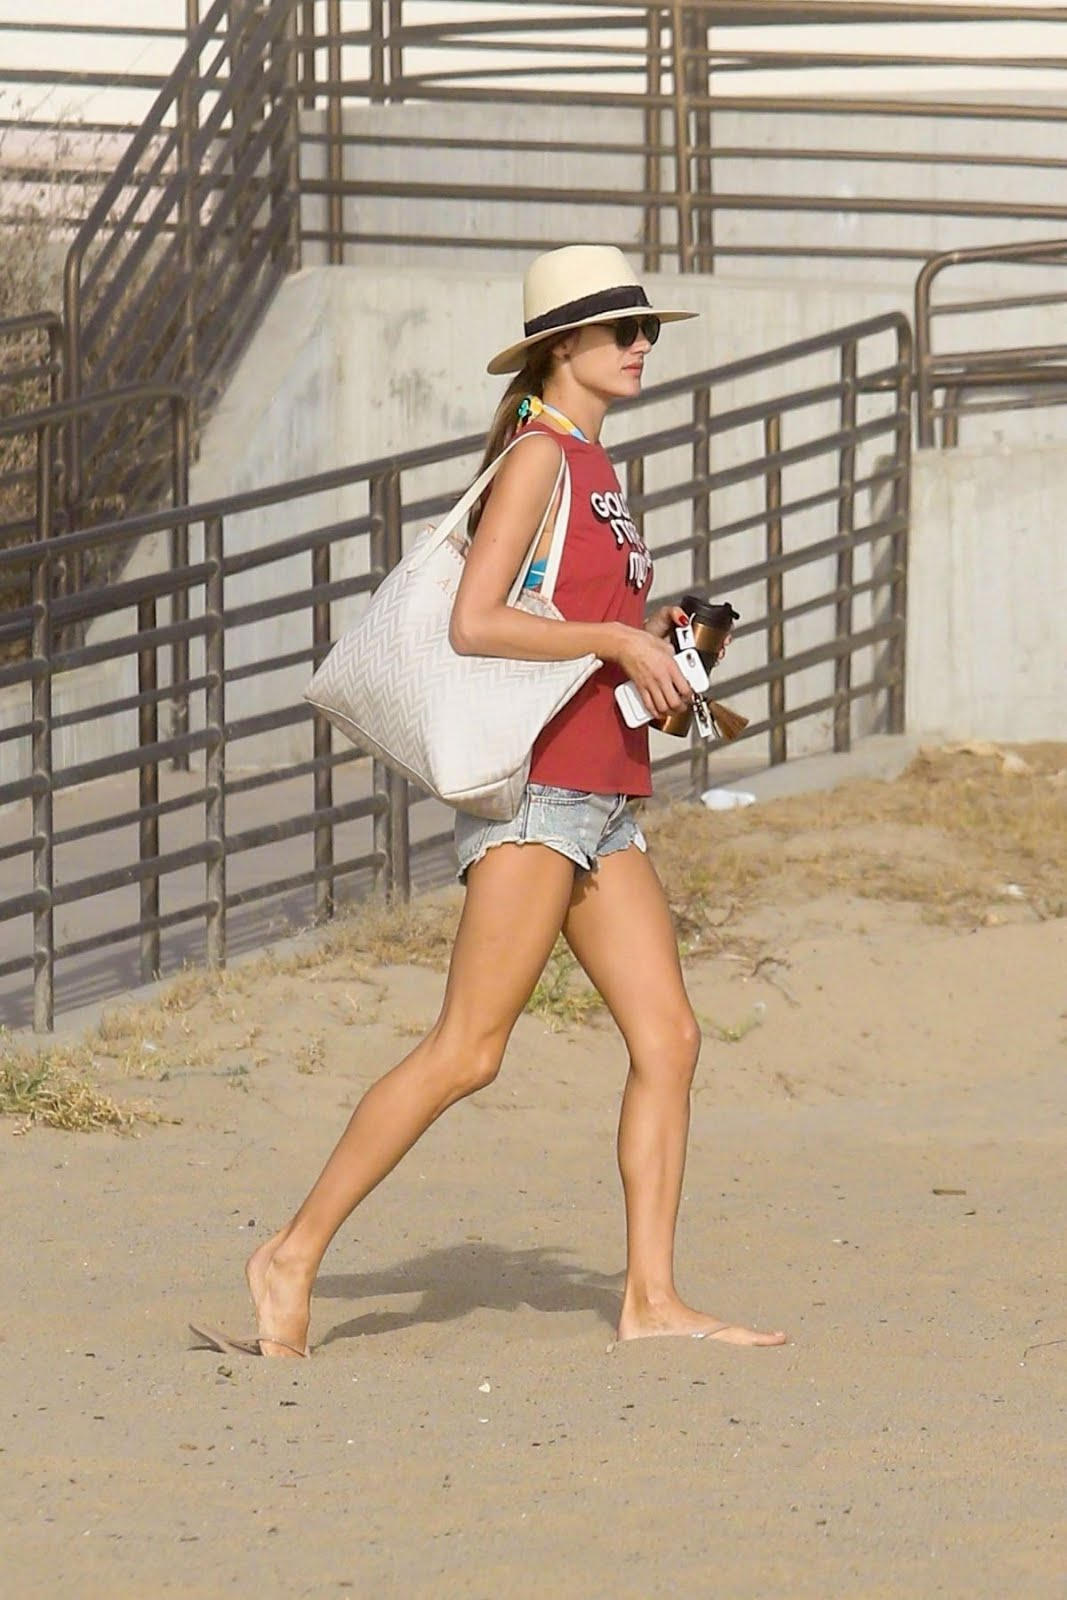 Victoria's Secret model Alessandra Ambrosio Playing Volleyball on the Beach in Santa Monica